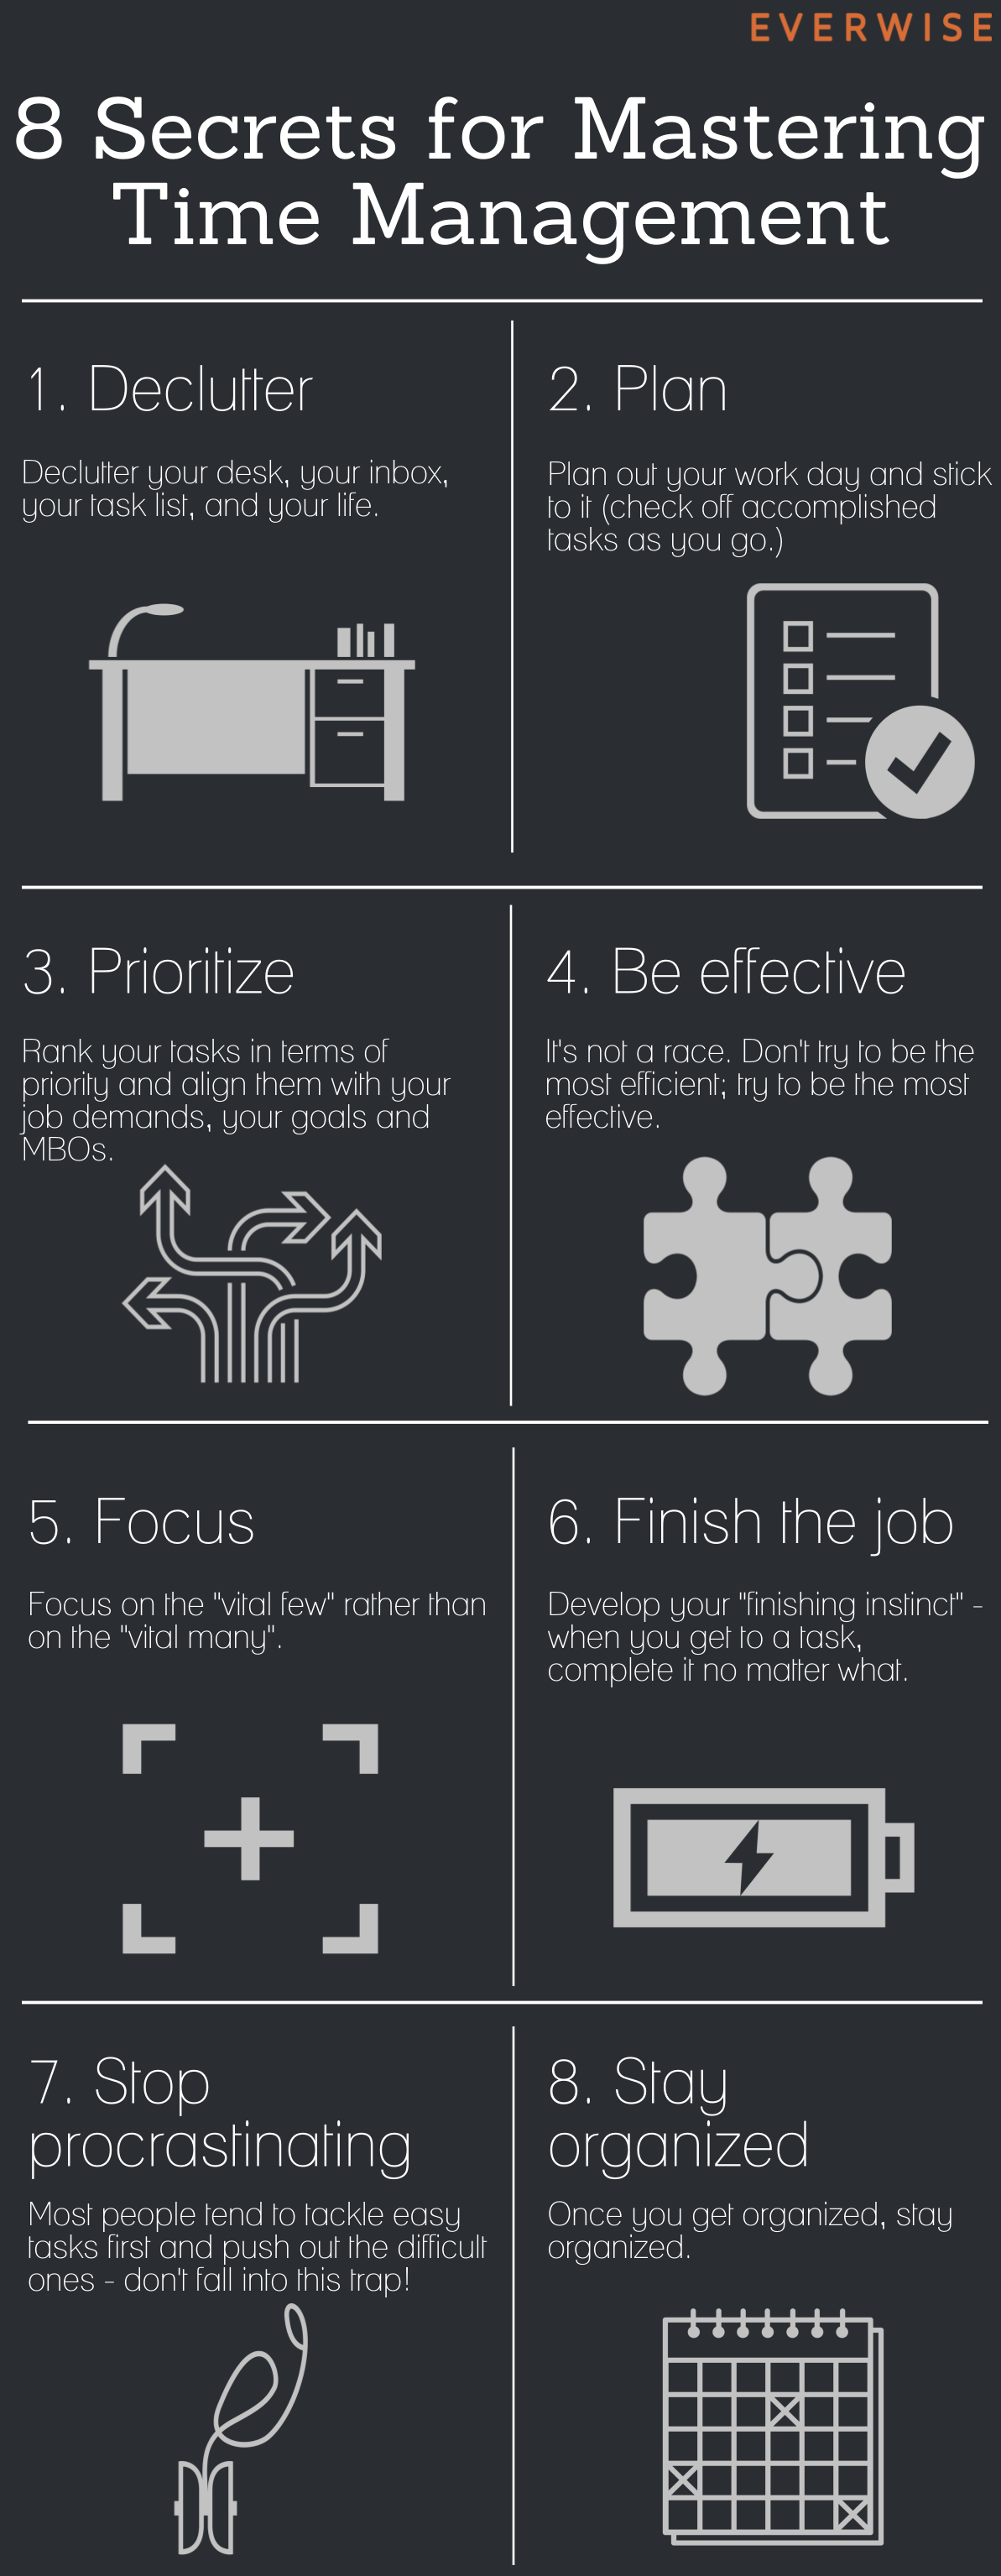 how to be productive and time management